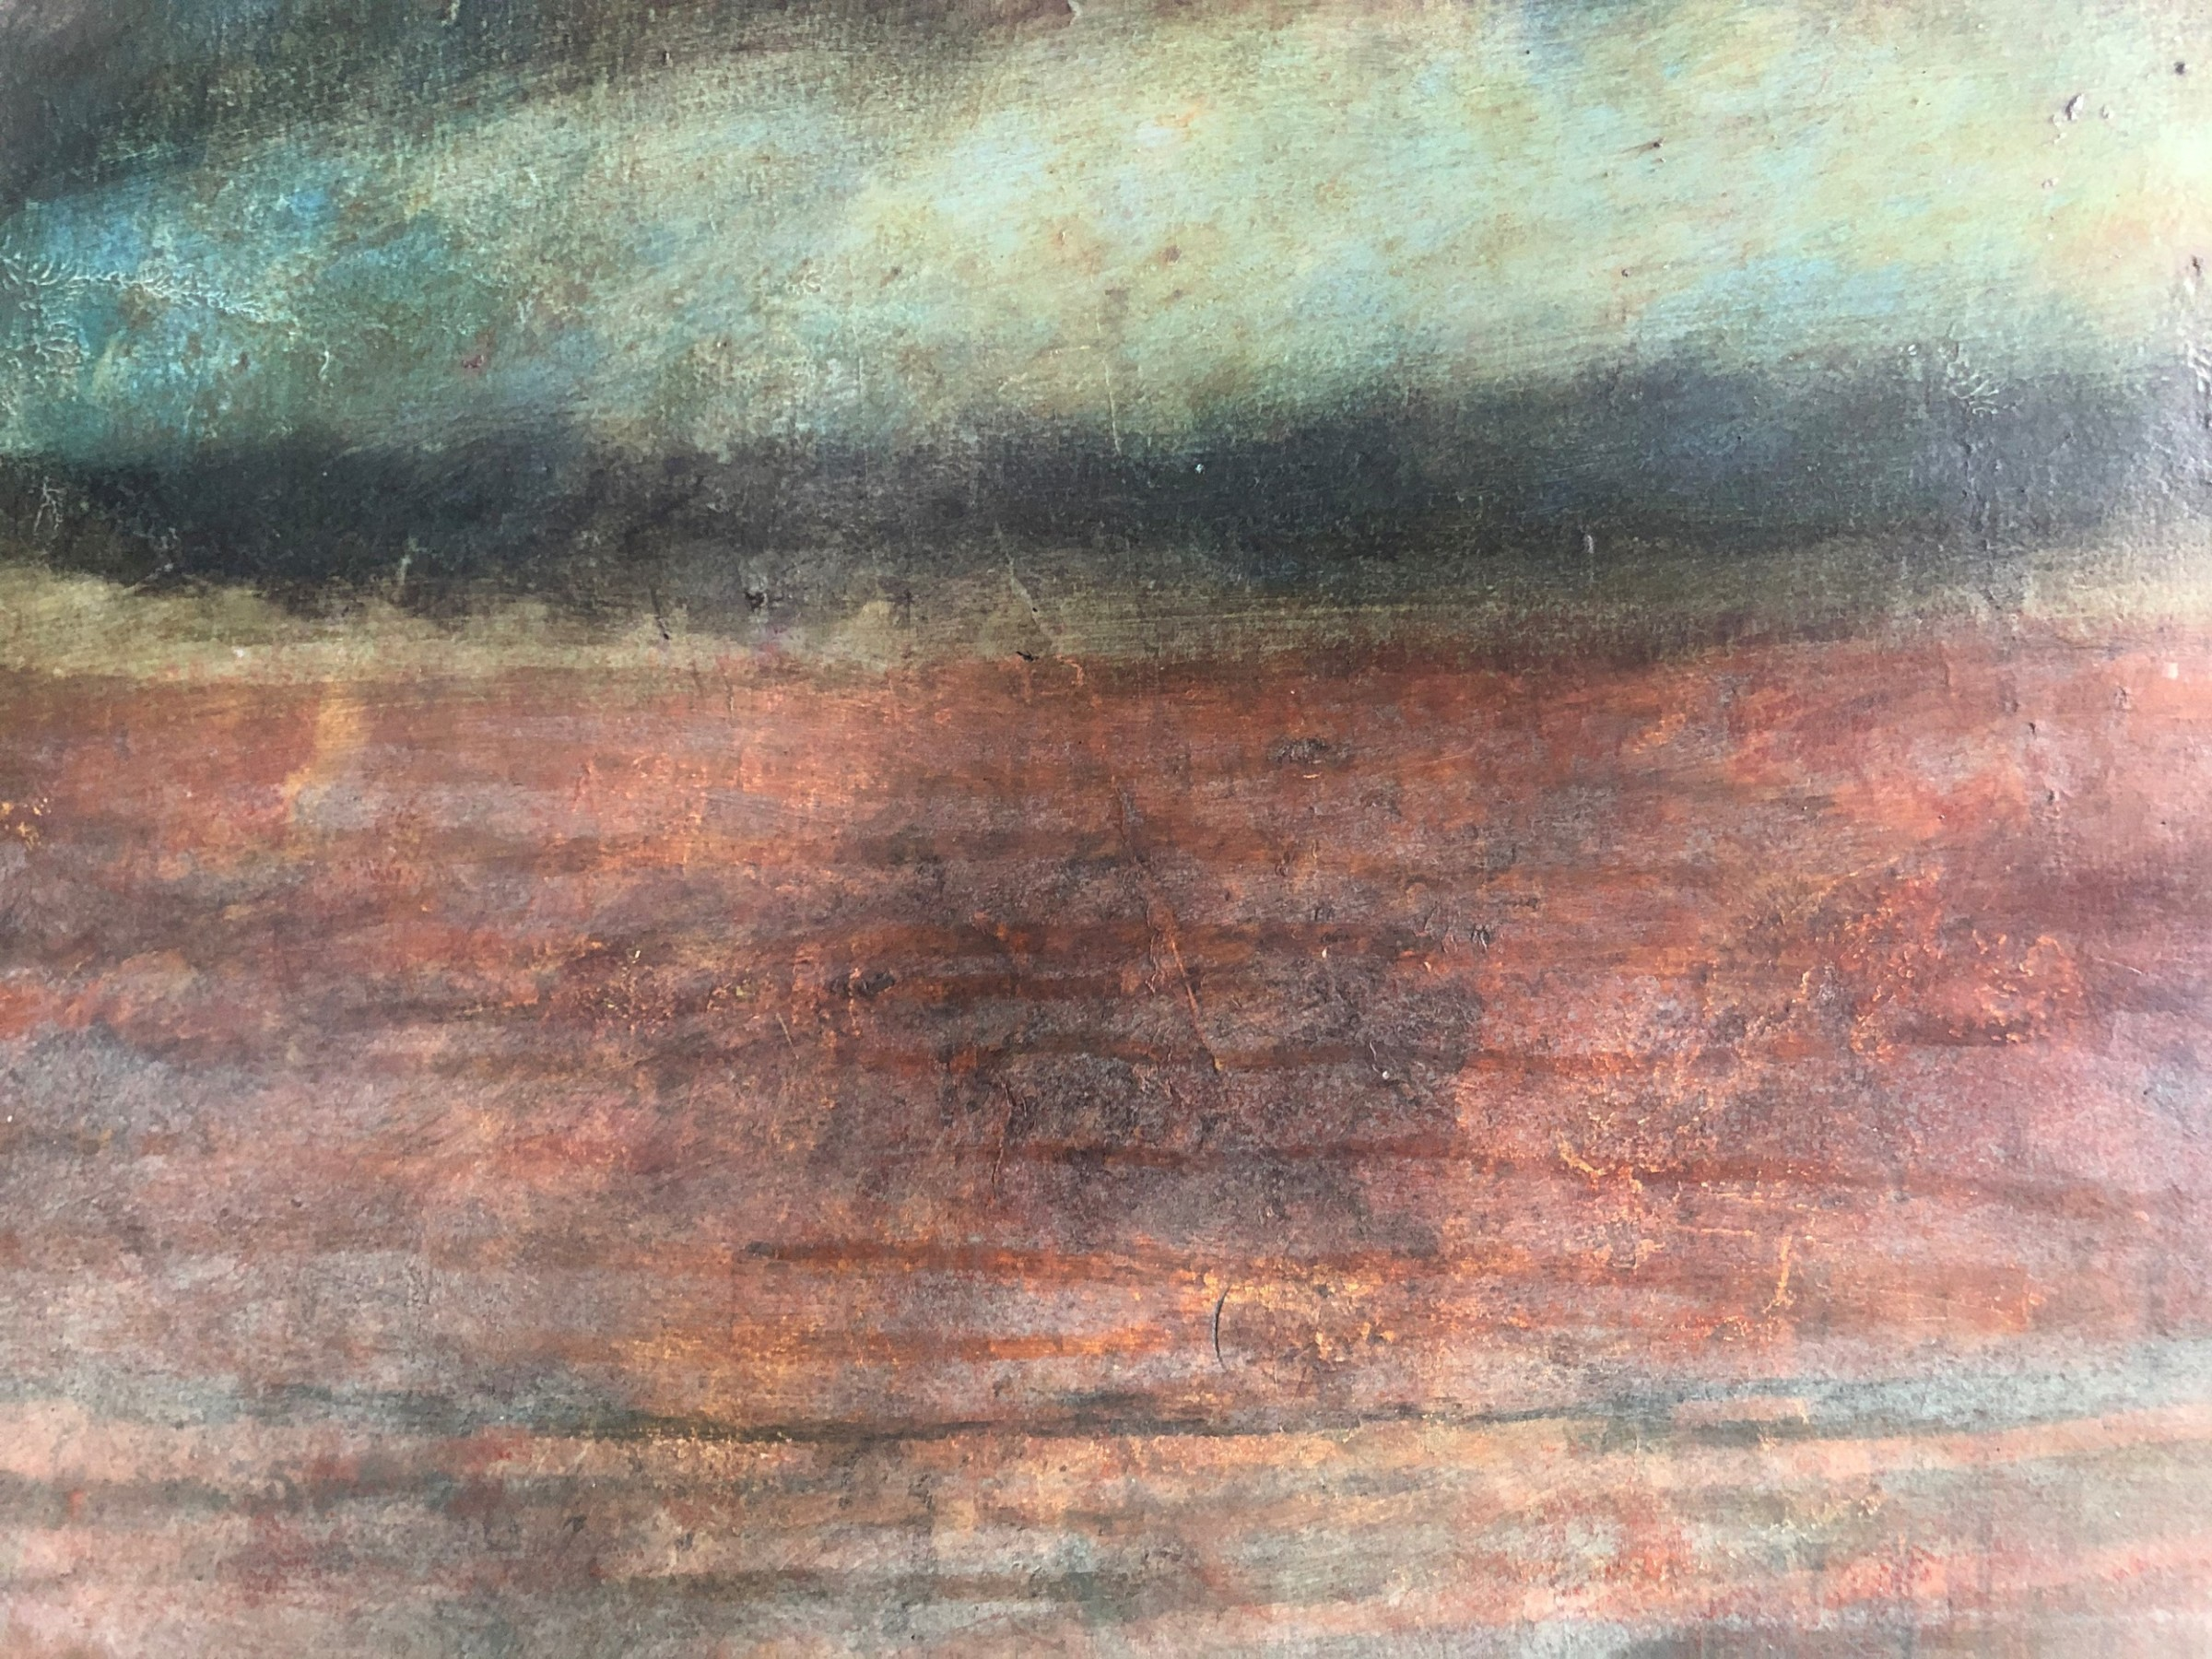 """<span class=""""link fancybox-details-link""""><a href=""""/artists/171-robin-richmond/works/12530-robin-richmond-ploughed-field-france/"""">View Detail Page</a></span><div class=""""artist""""><span class=""""artist""""><strong>Robin Richmond</strong></span></div><div class=""""title""""><em>Ploughed Field, France</em></div><div class=""""medium"""">watercolour acrylic & ink on paper</div><div class=""""dimensions"""">Artwork: 30 x 42 cm</div><div class=""""price"""">£750.00</div>"""